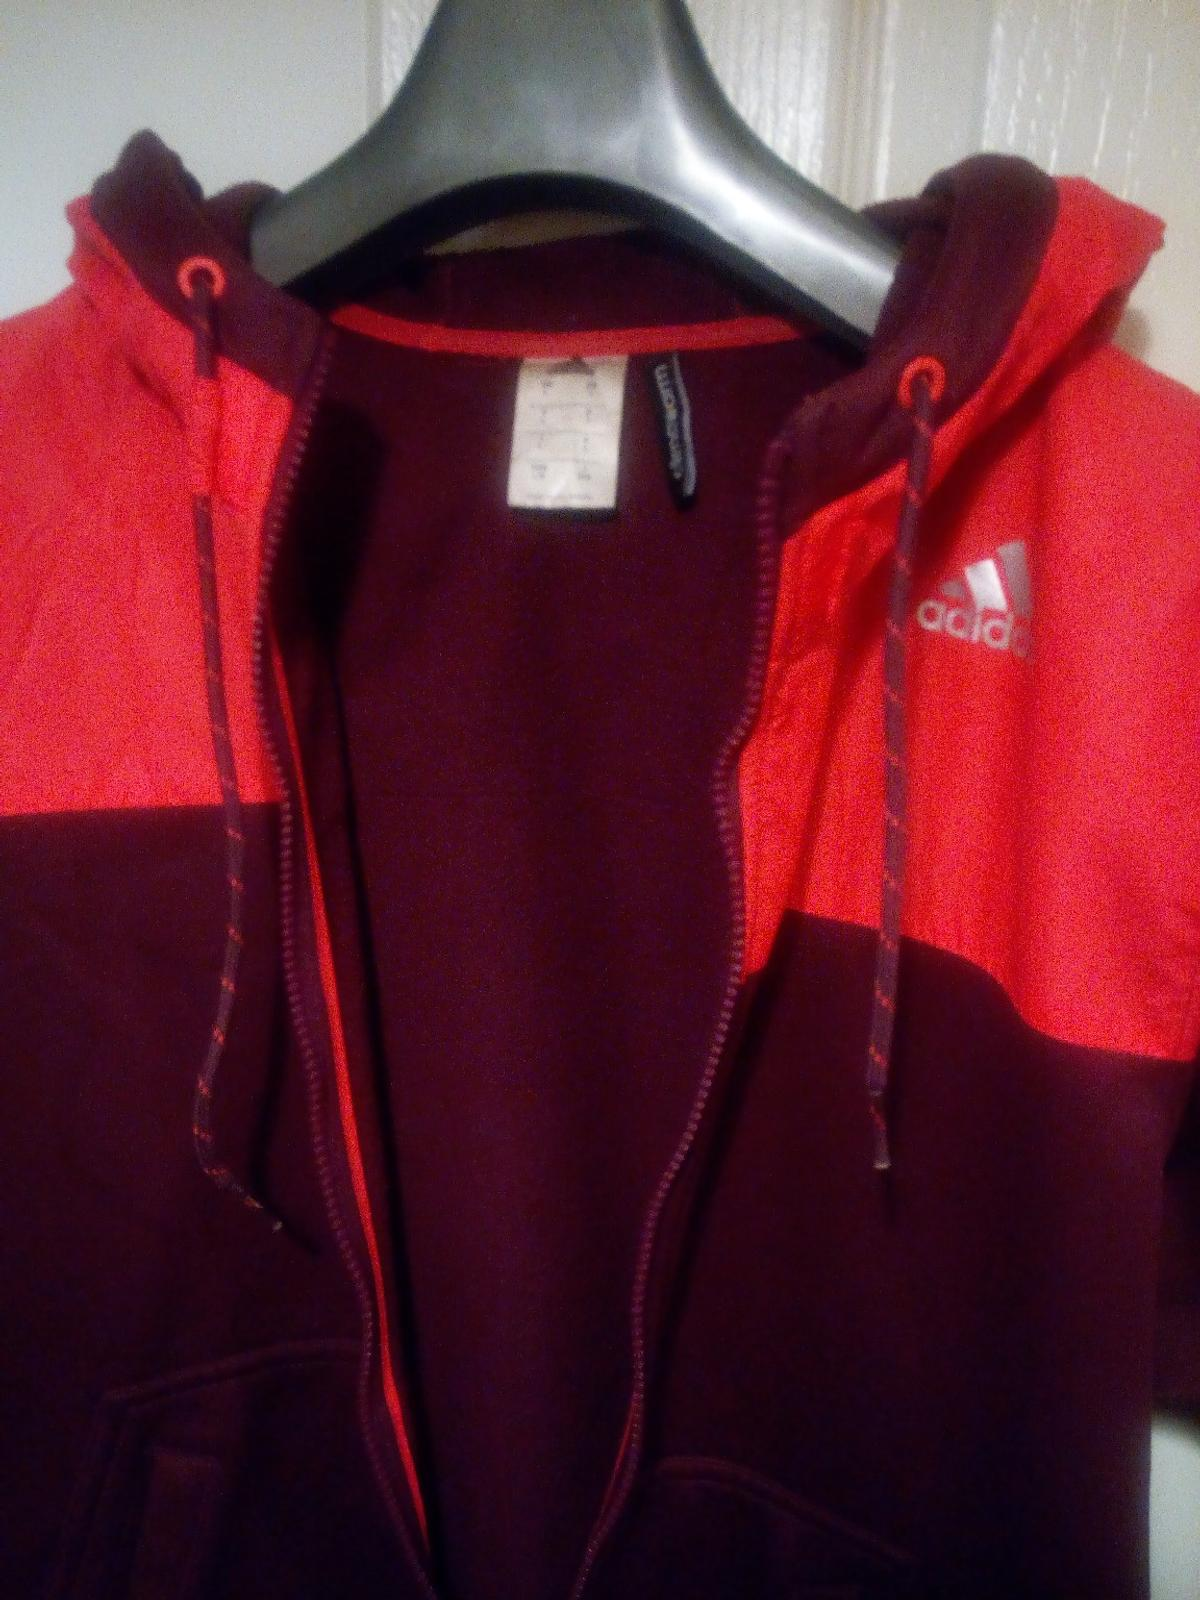 premium selection 3049c 4fabb Mens Jacket Adidas Hoodie Climacool L Large